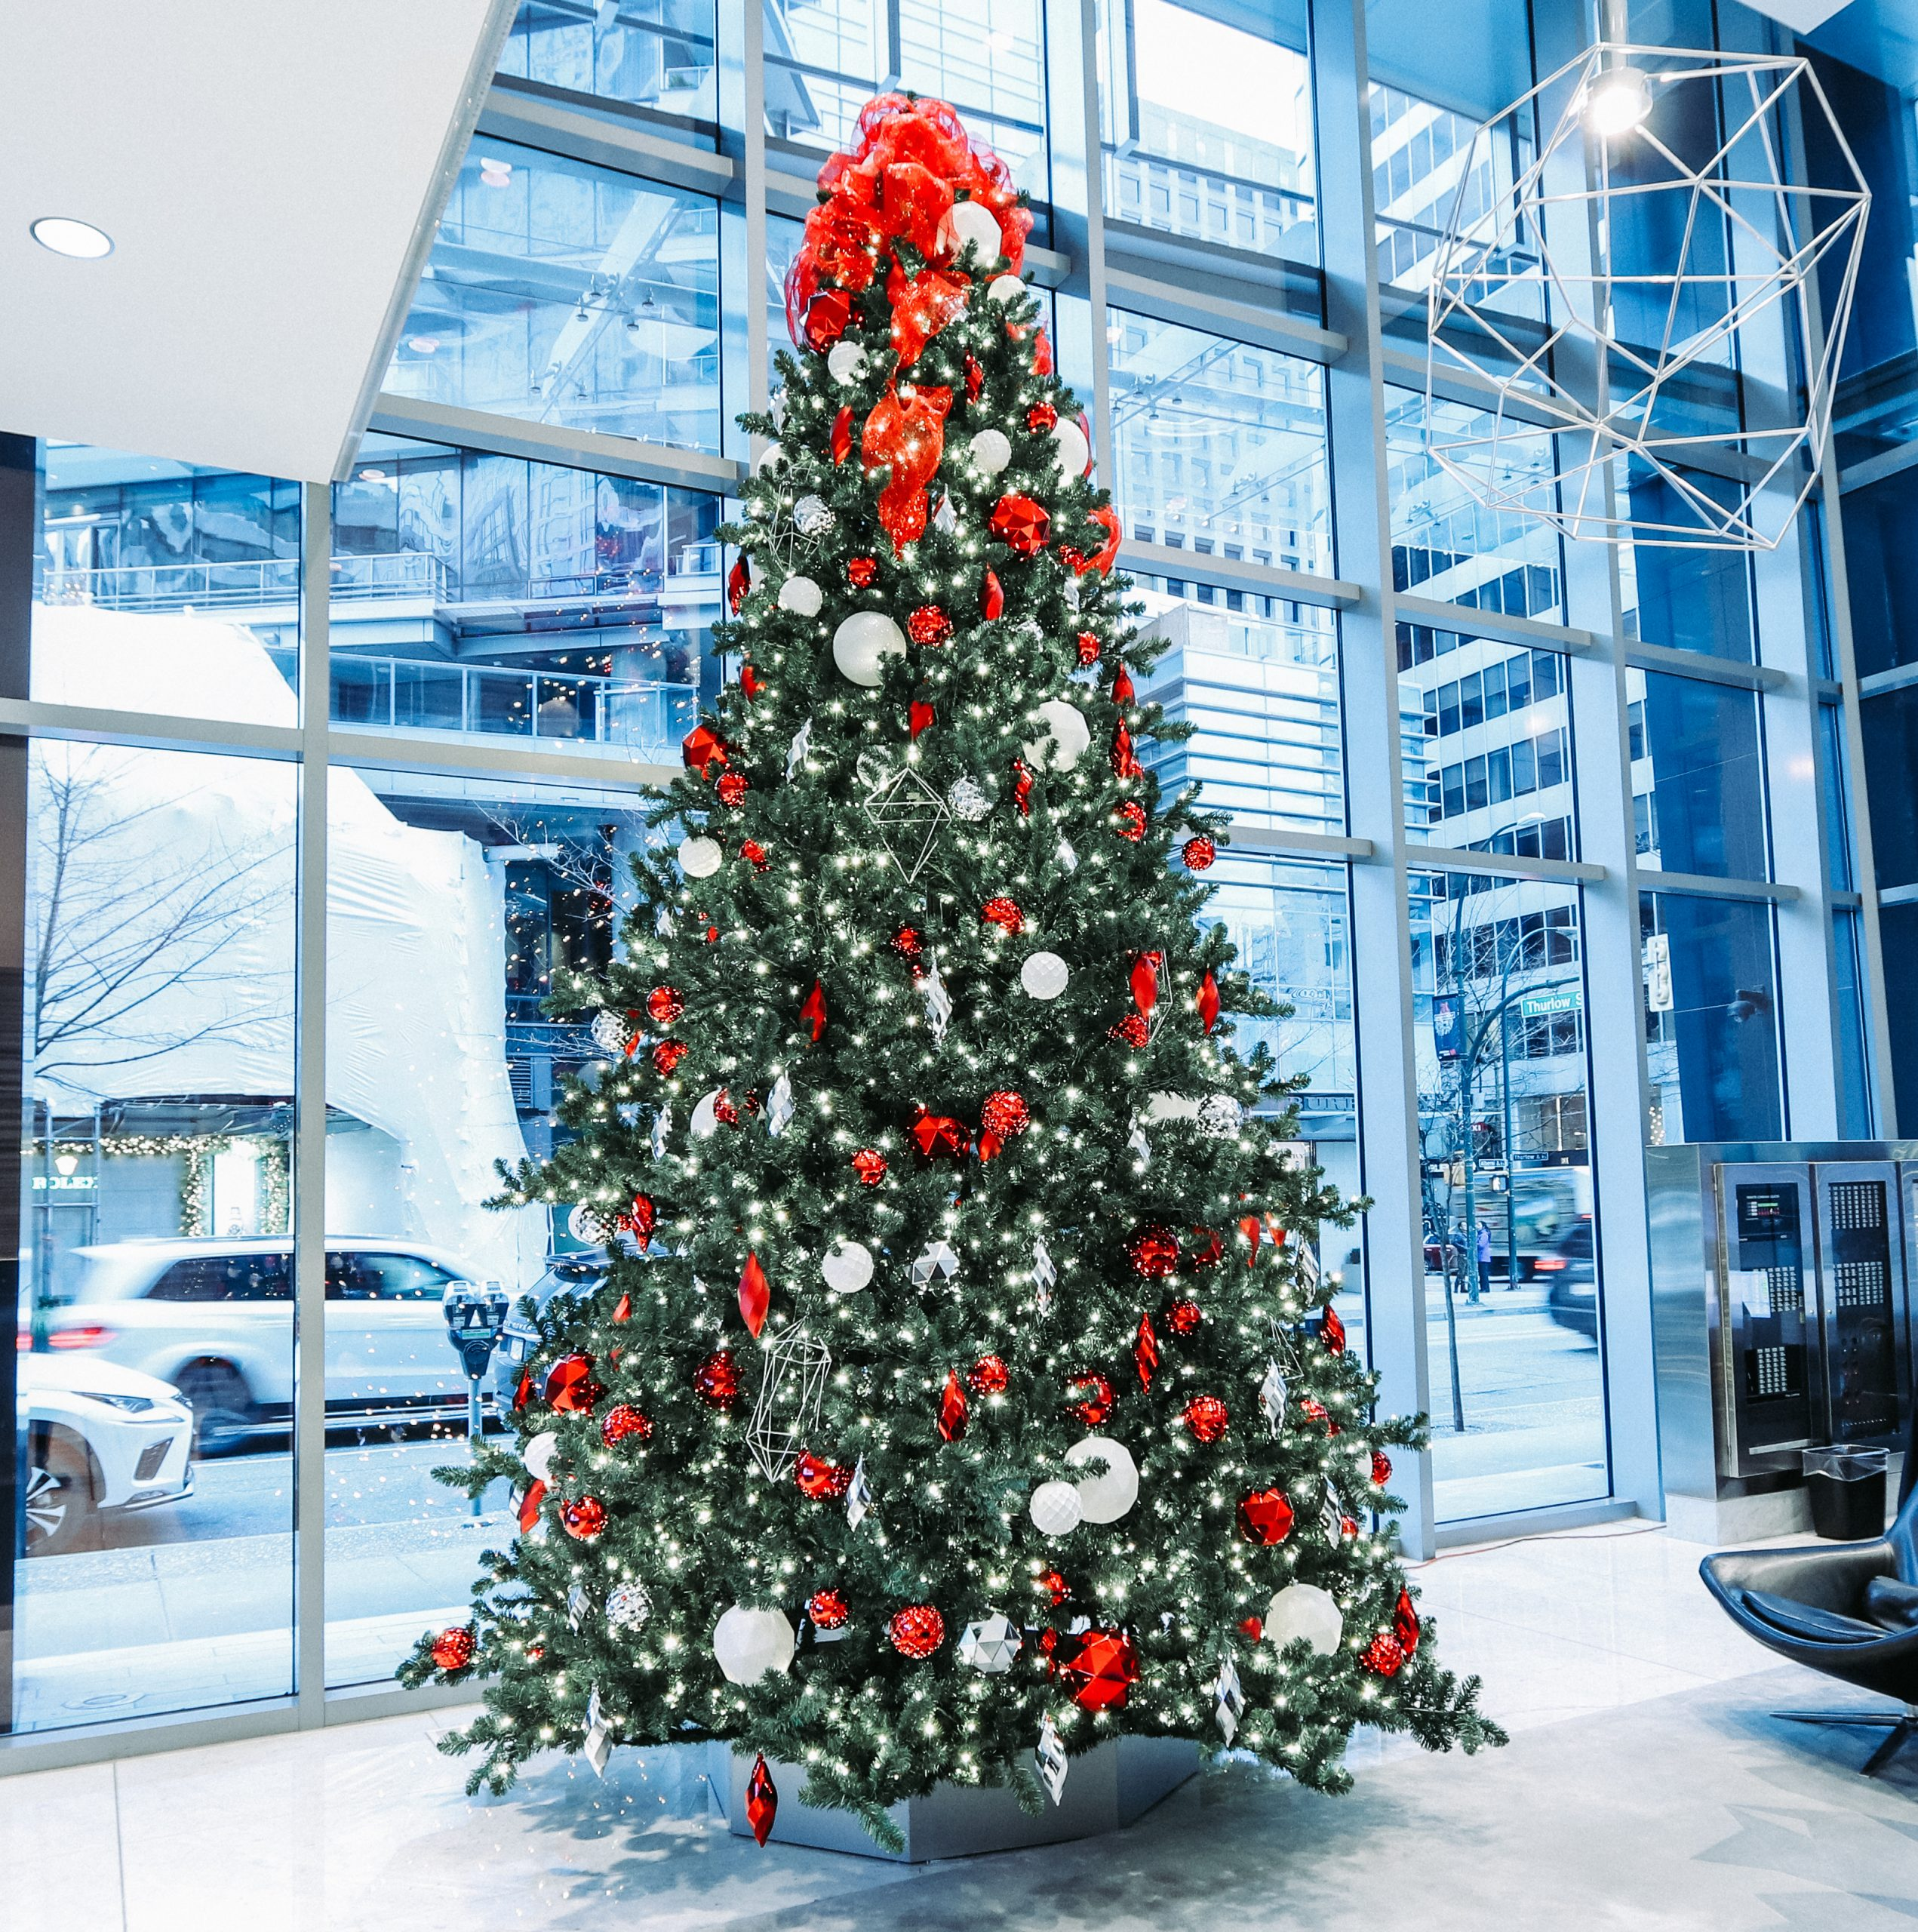 commercial christmas tree in office building lobby with red, white and silver decor, 16 feet tall